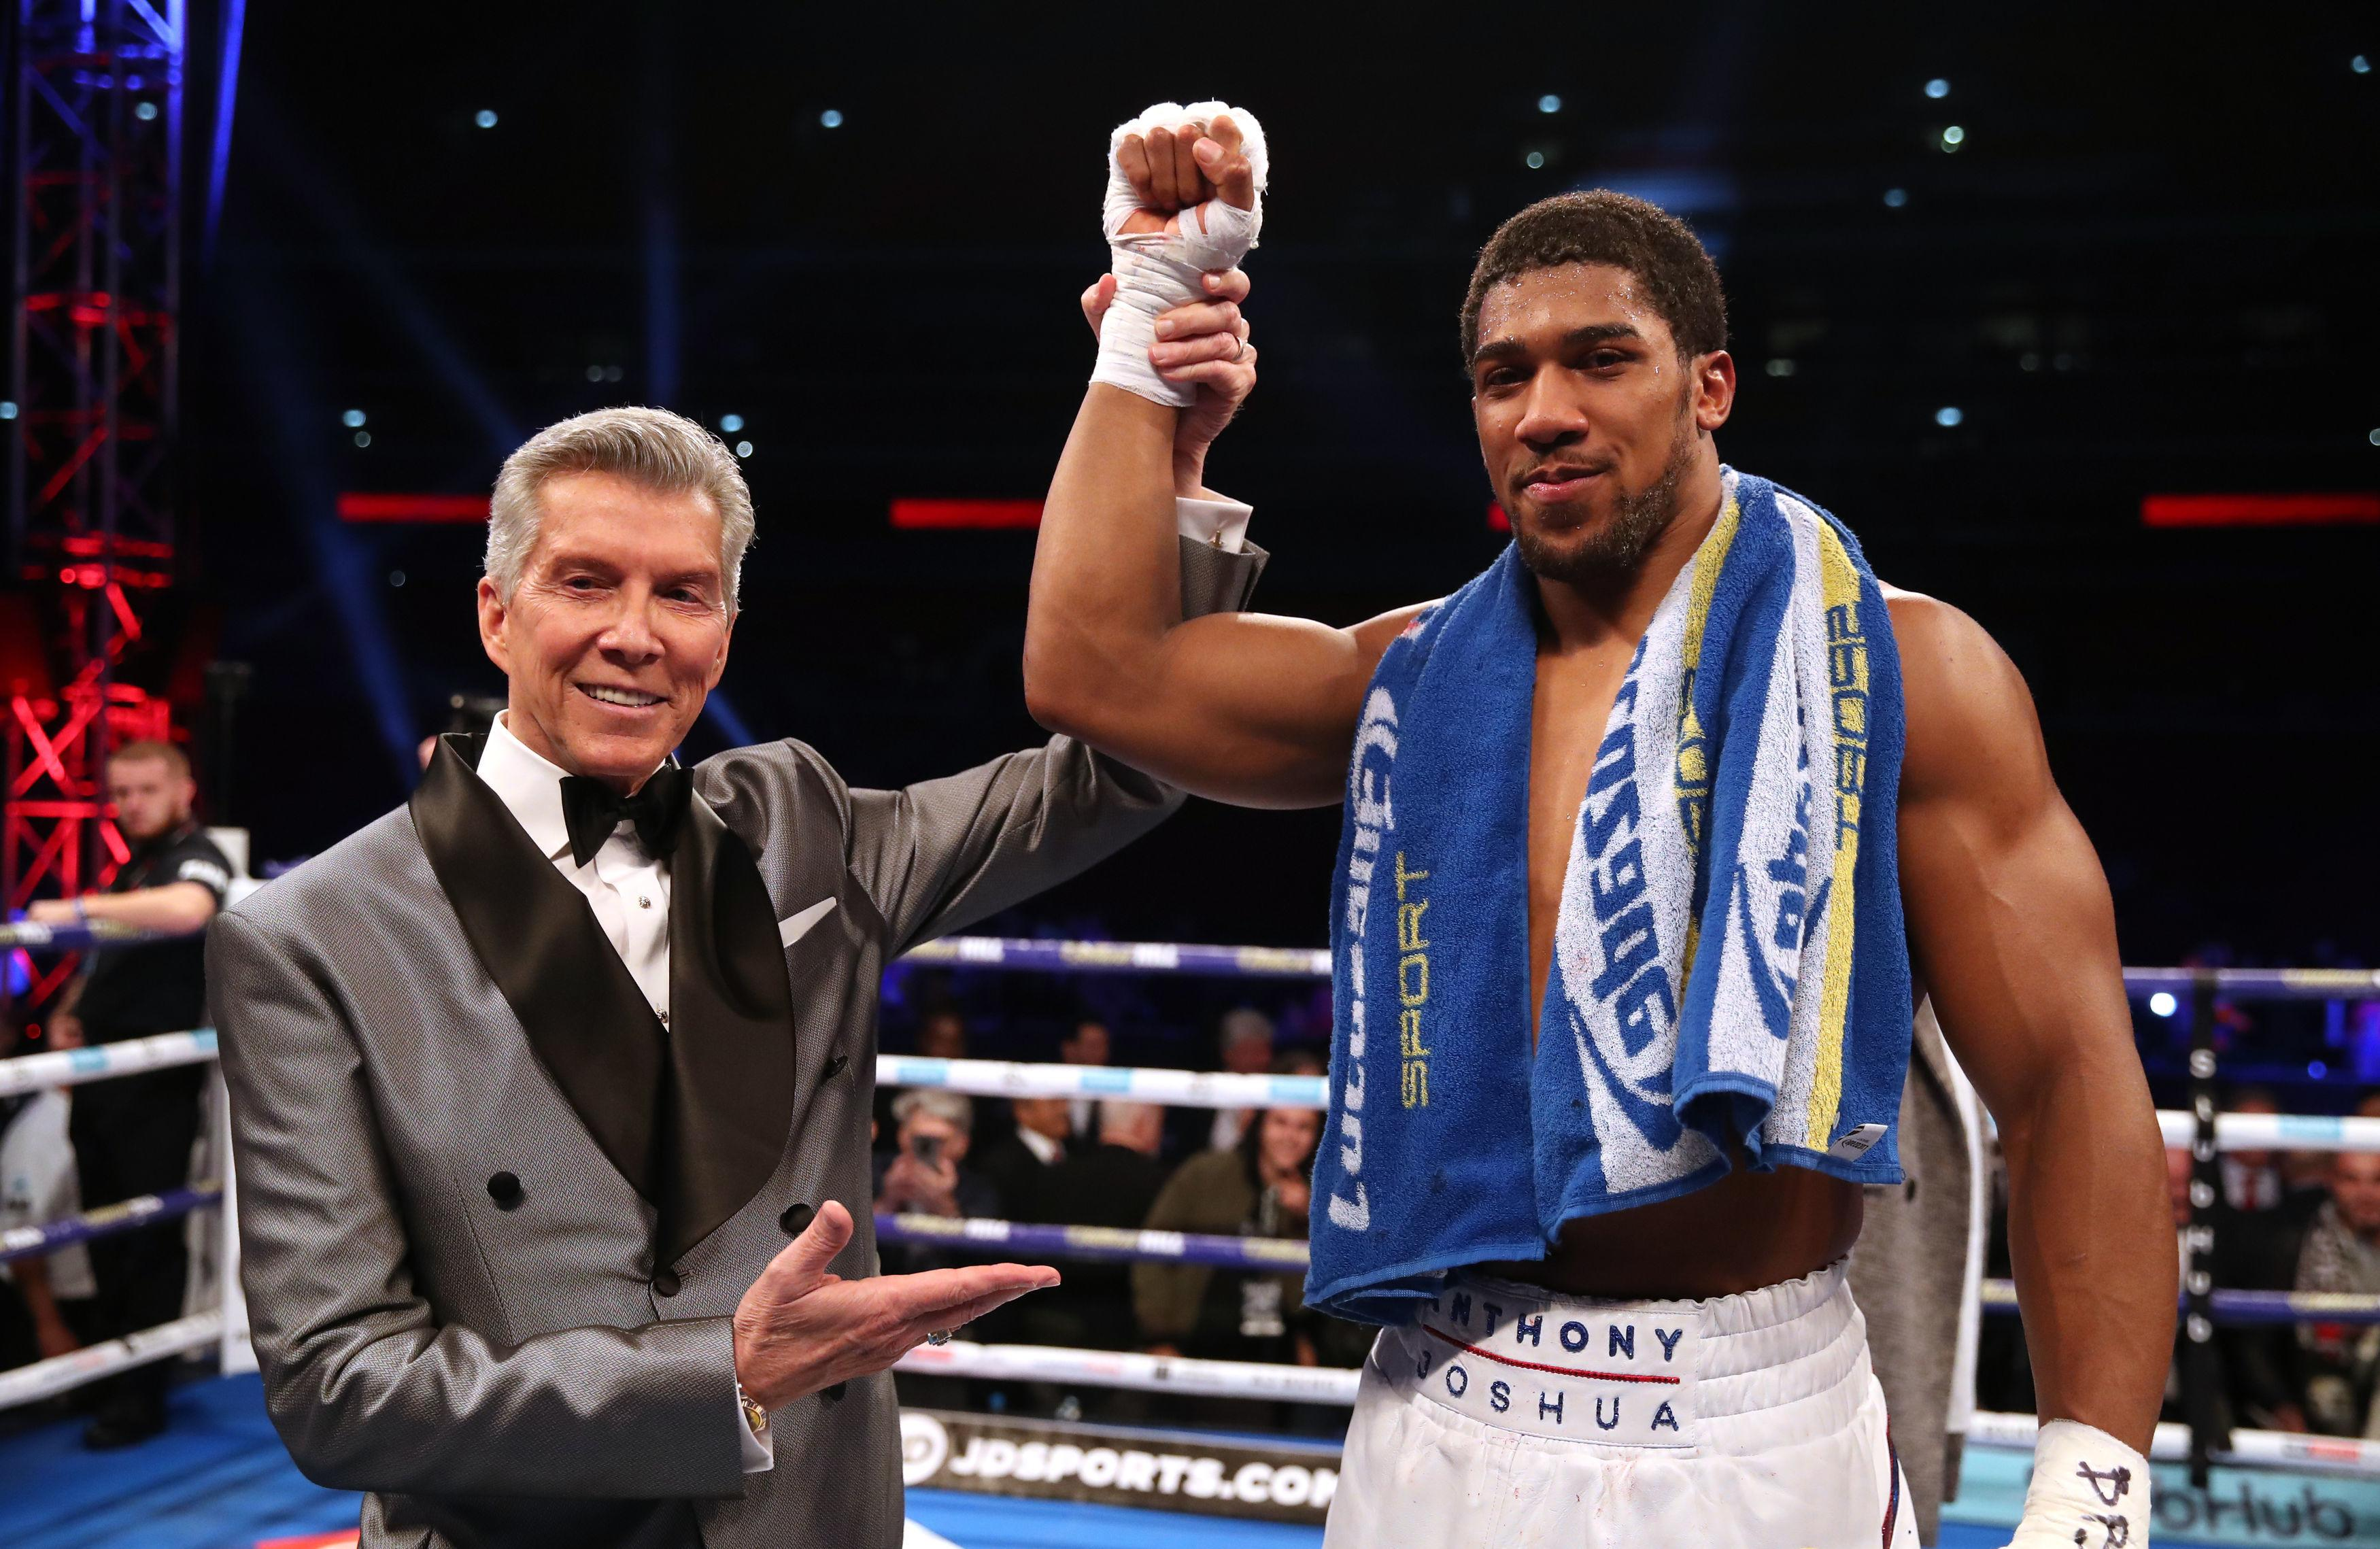 The American has his sights set on heavyweight champ Anthony Joshua